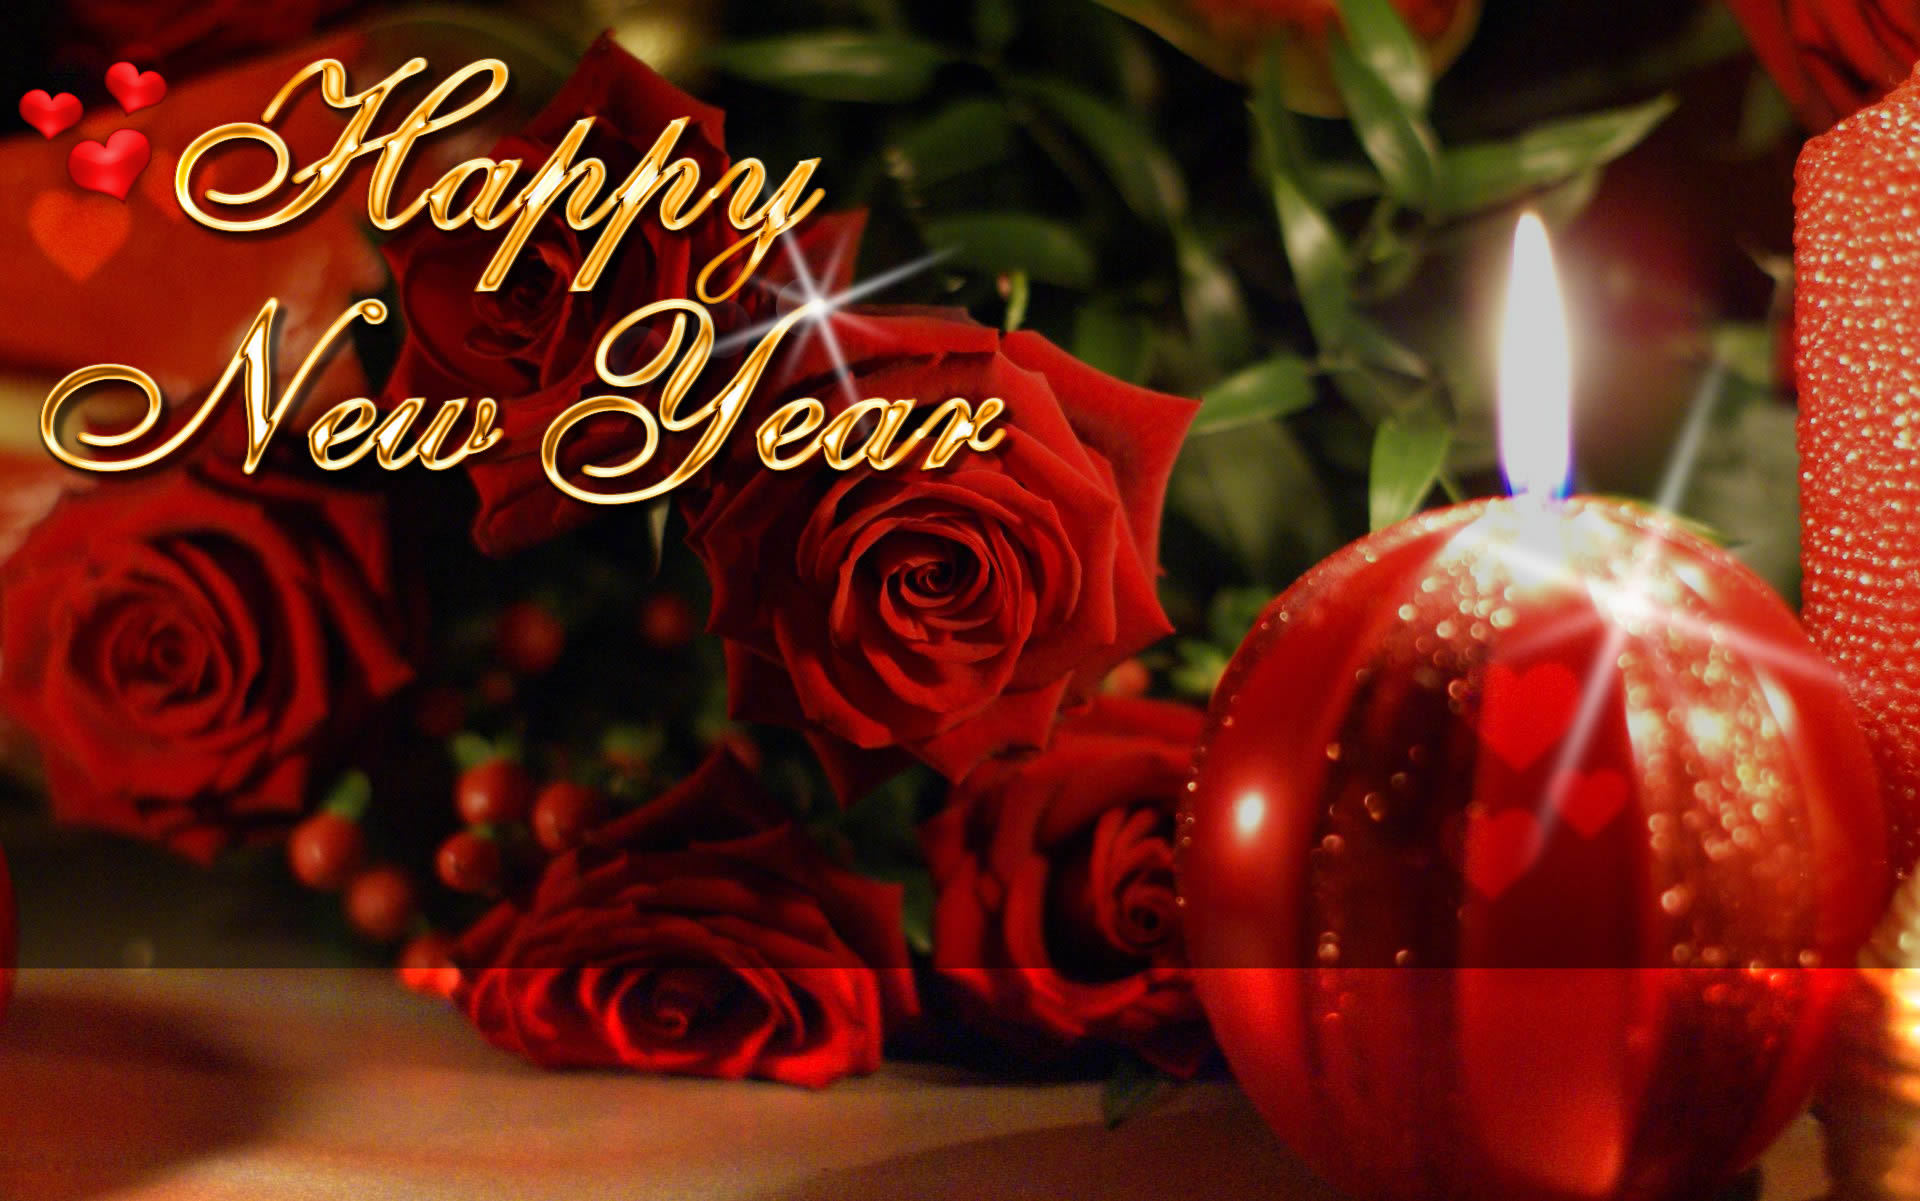 Wish you all a happy new year with a tender and romantic night of love